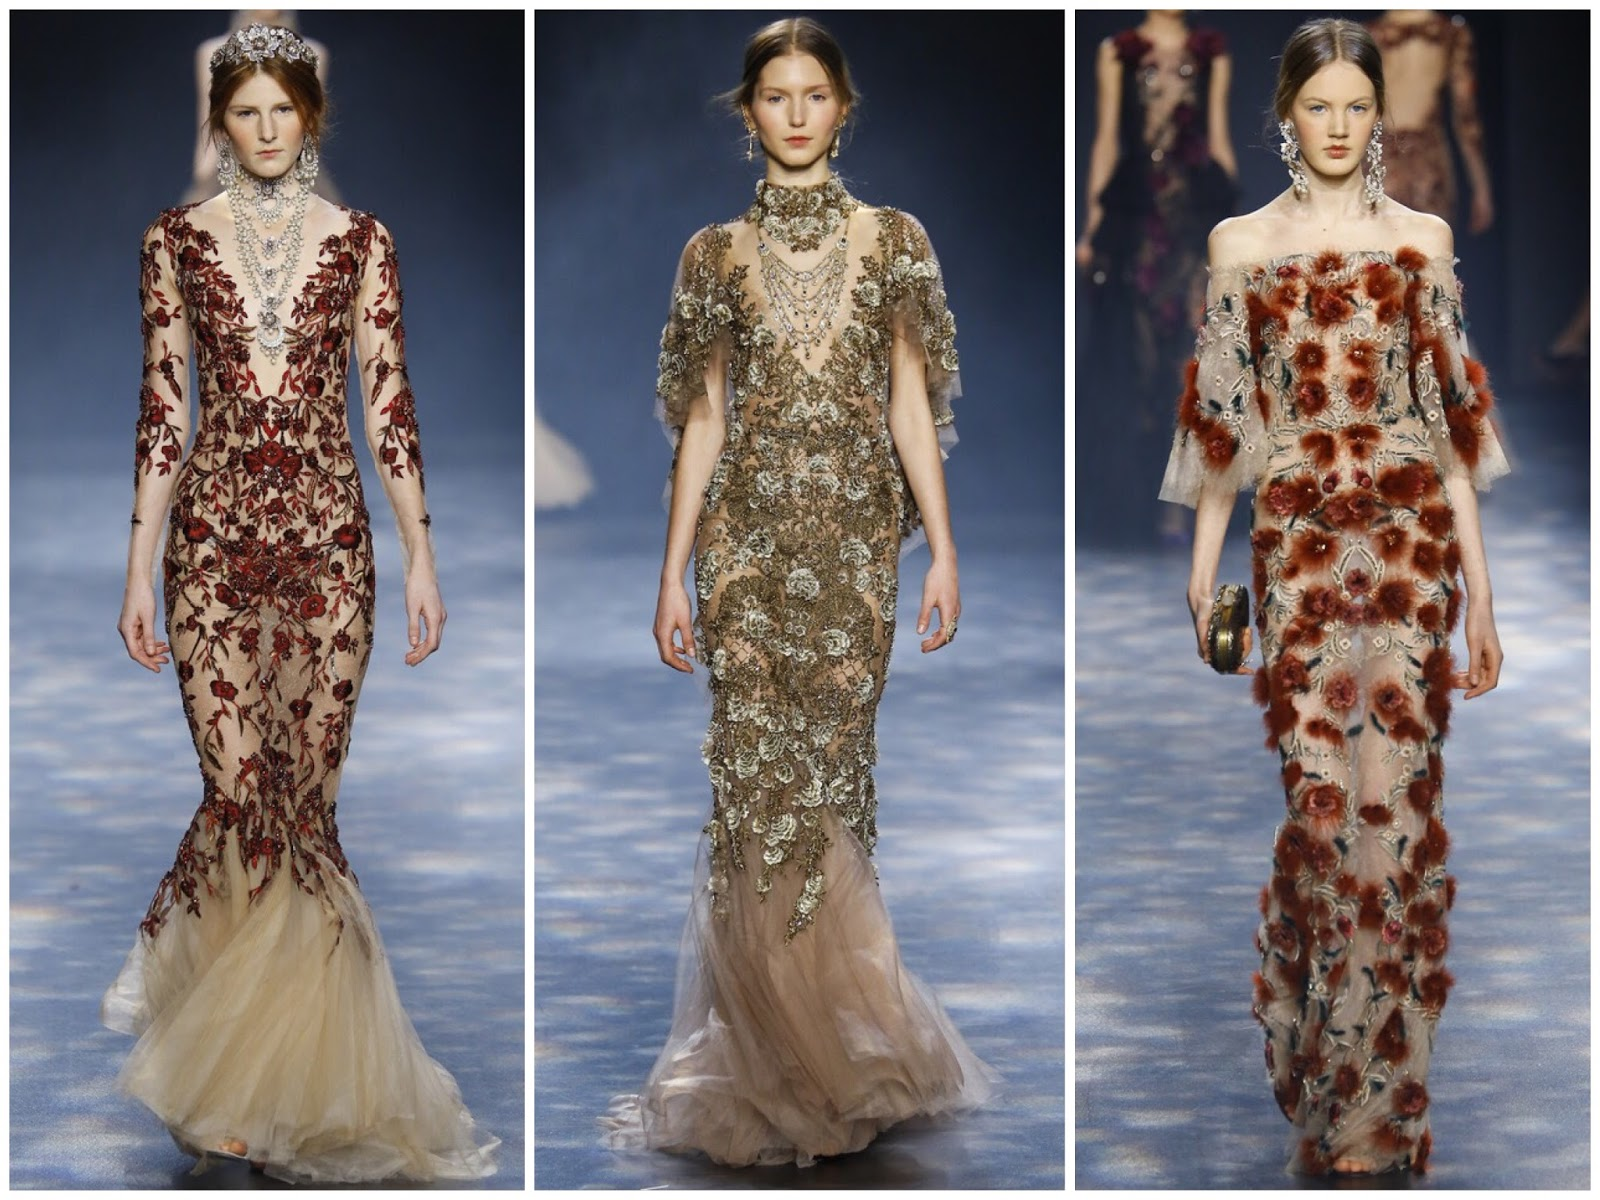 marchesa fw'16-17 new york fashion week